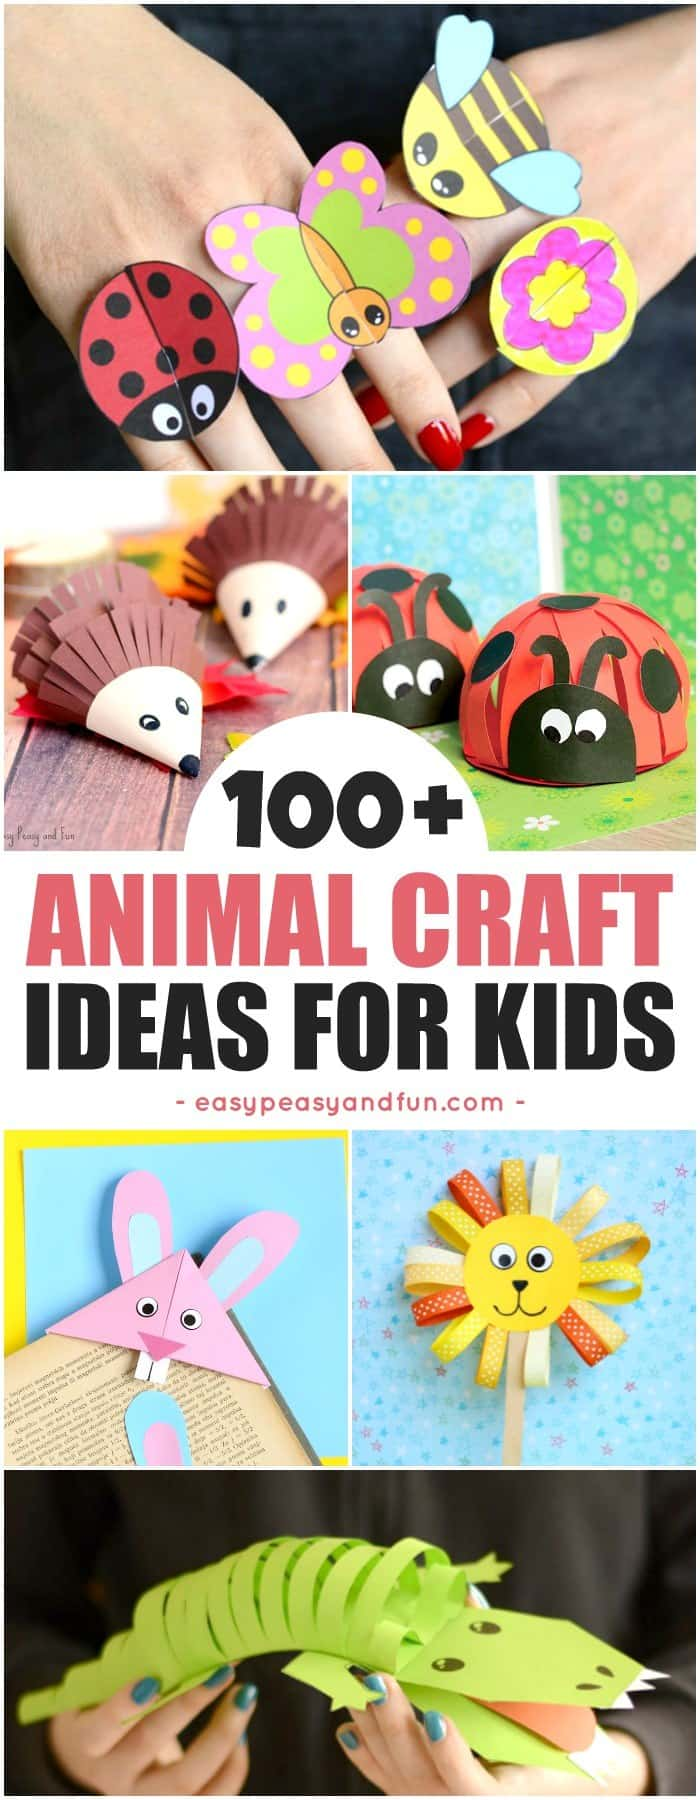 Super-Fun-Animal-Crafts-for-Kids.-A-lot-of-animal-paper-crafts-nature-materials-crafts-and-a-lot-more.-A-perfect-activity-for-kids-to-make-them-busy-and-entertained.